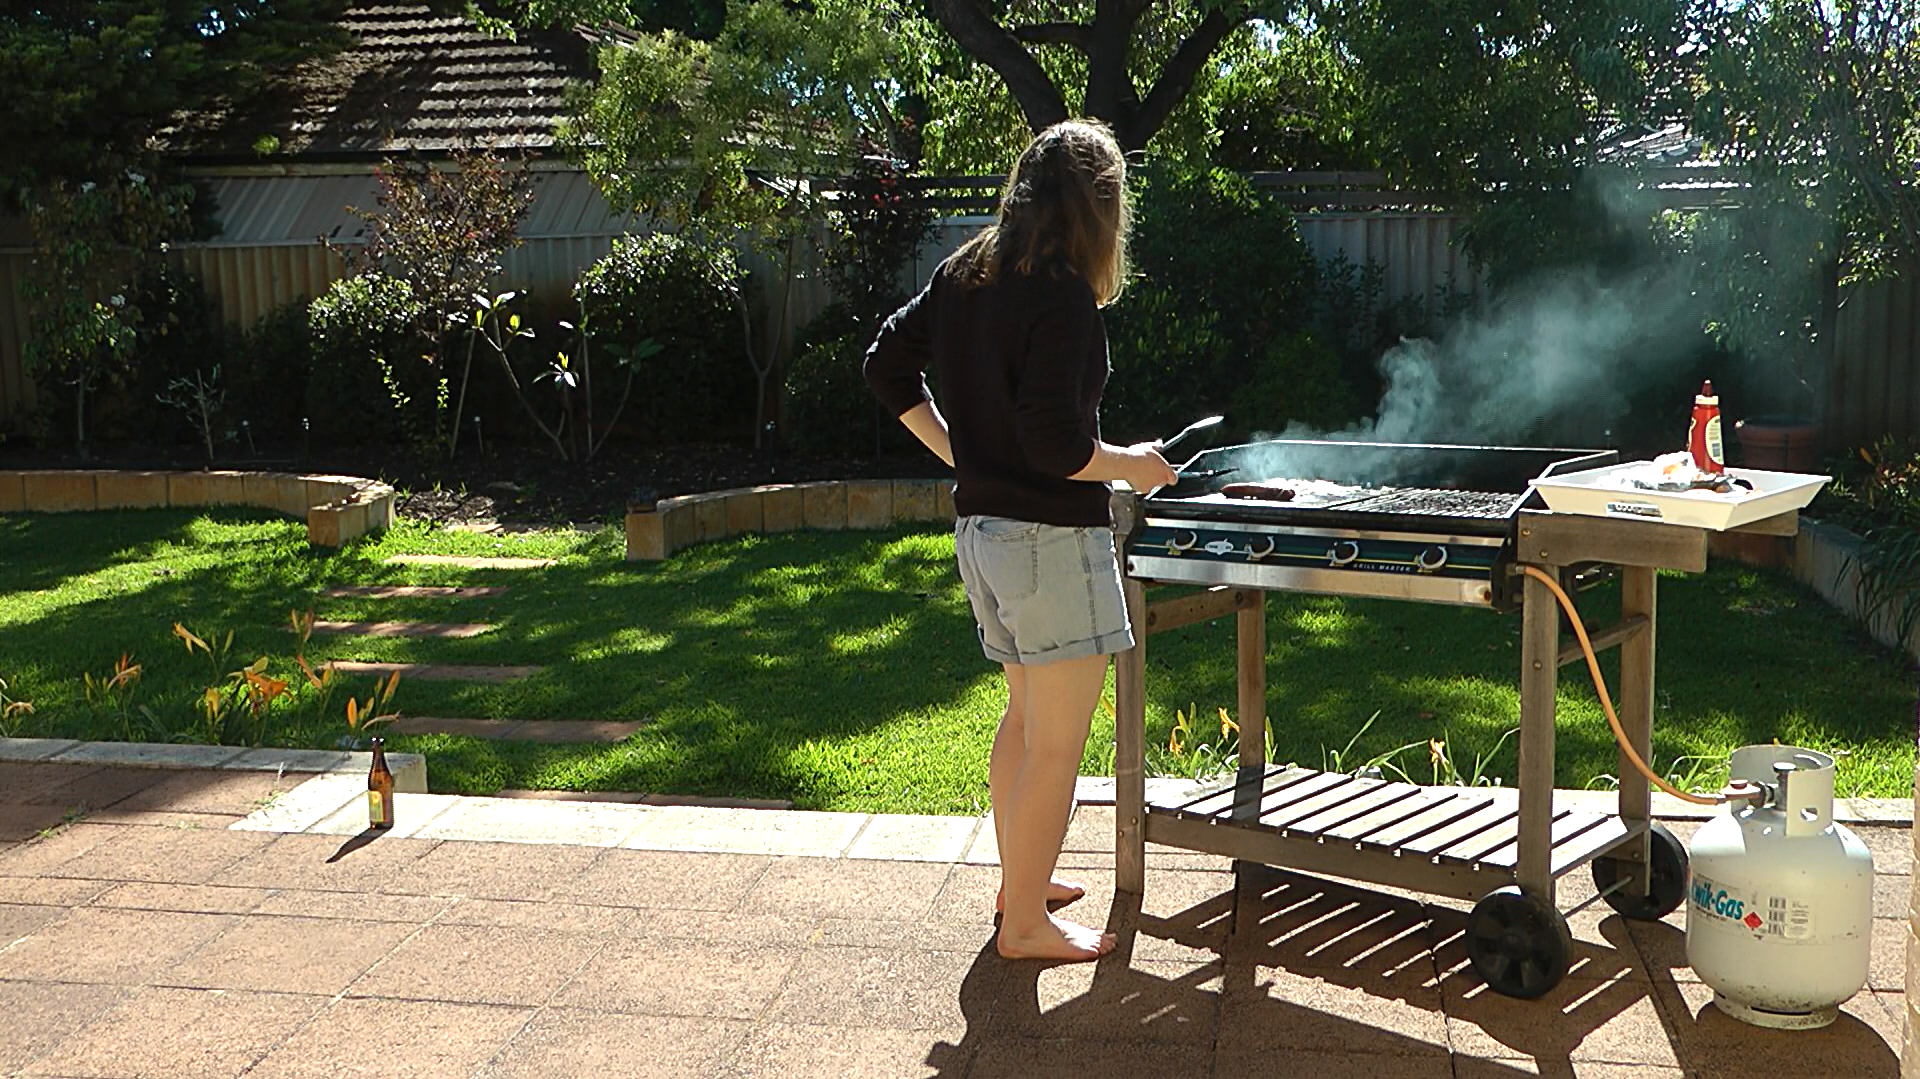 Barbecue By Myself